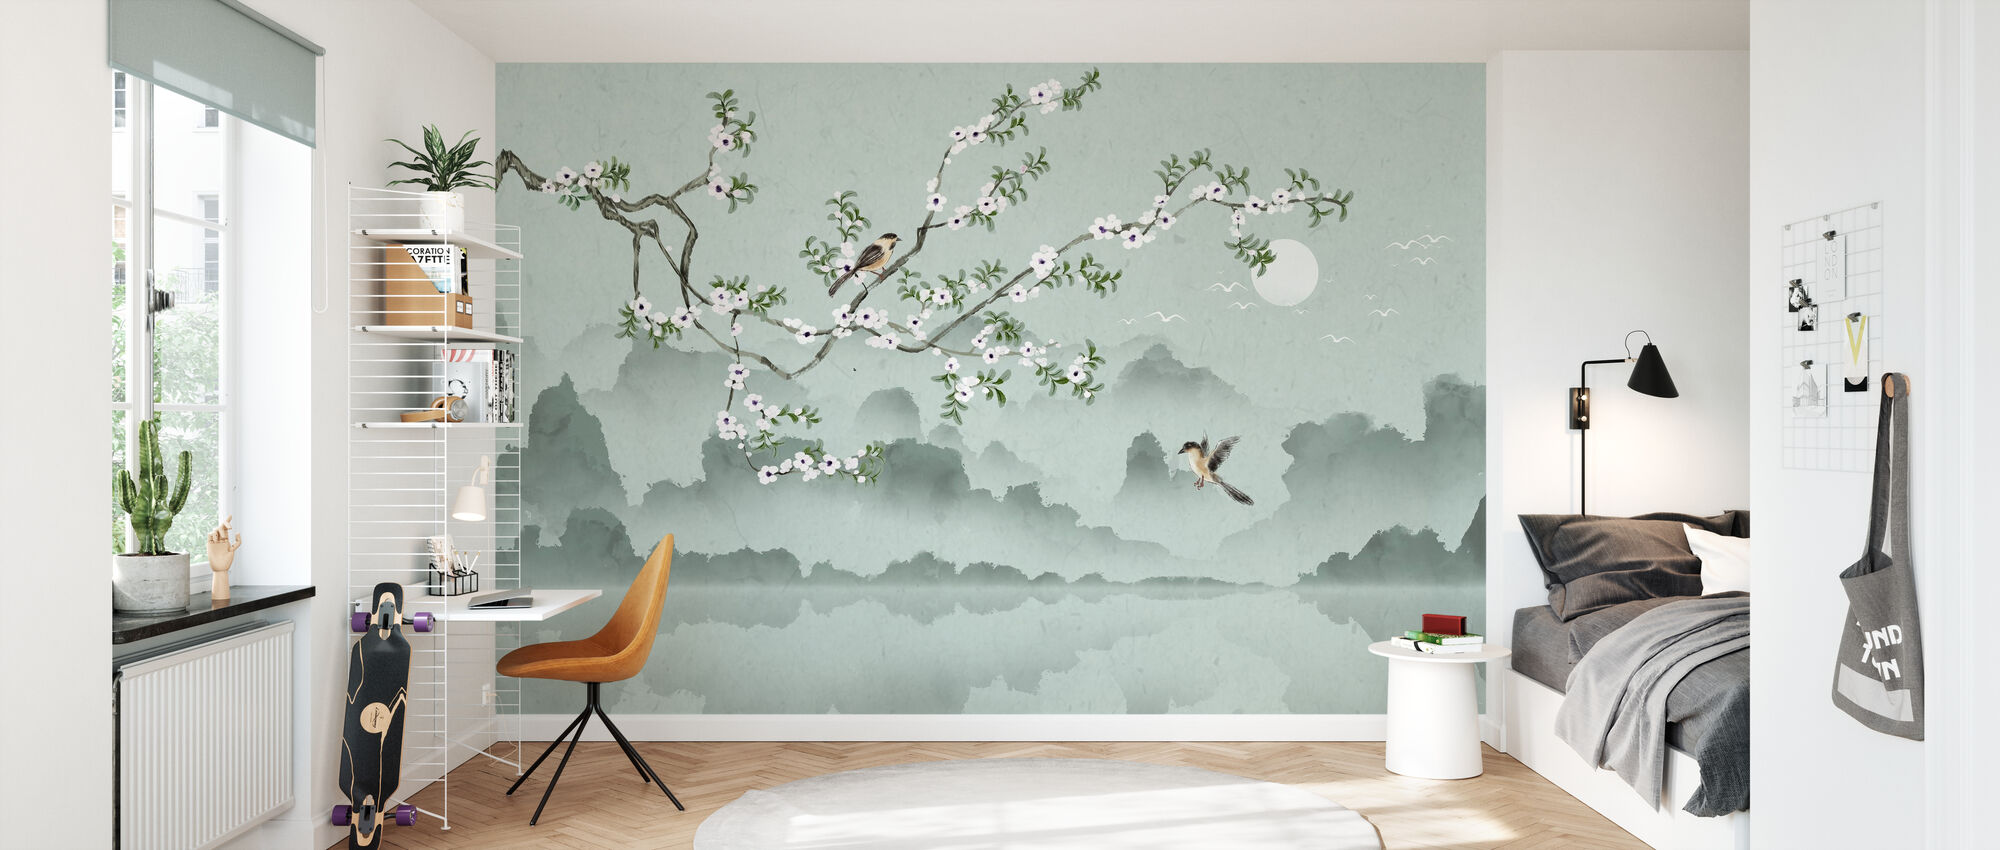 Birds Lookout - Wallpaper - Kids Room